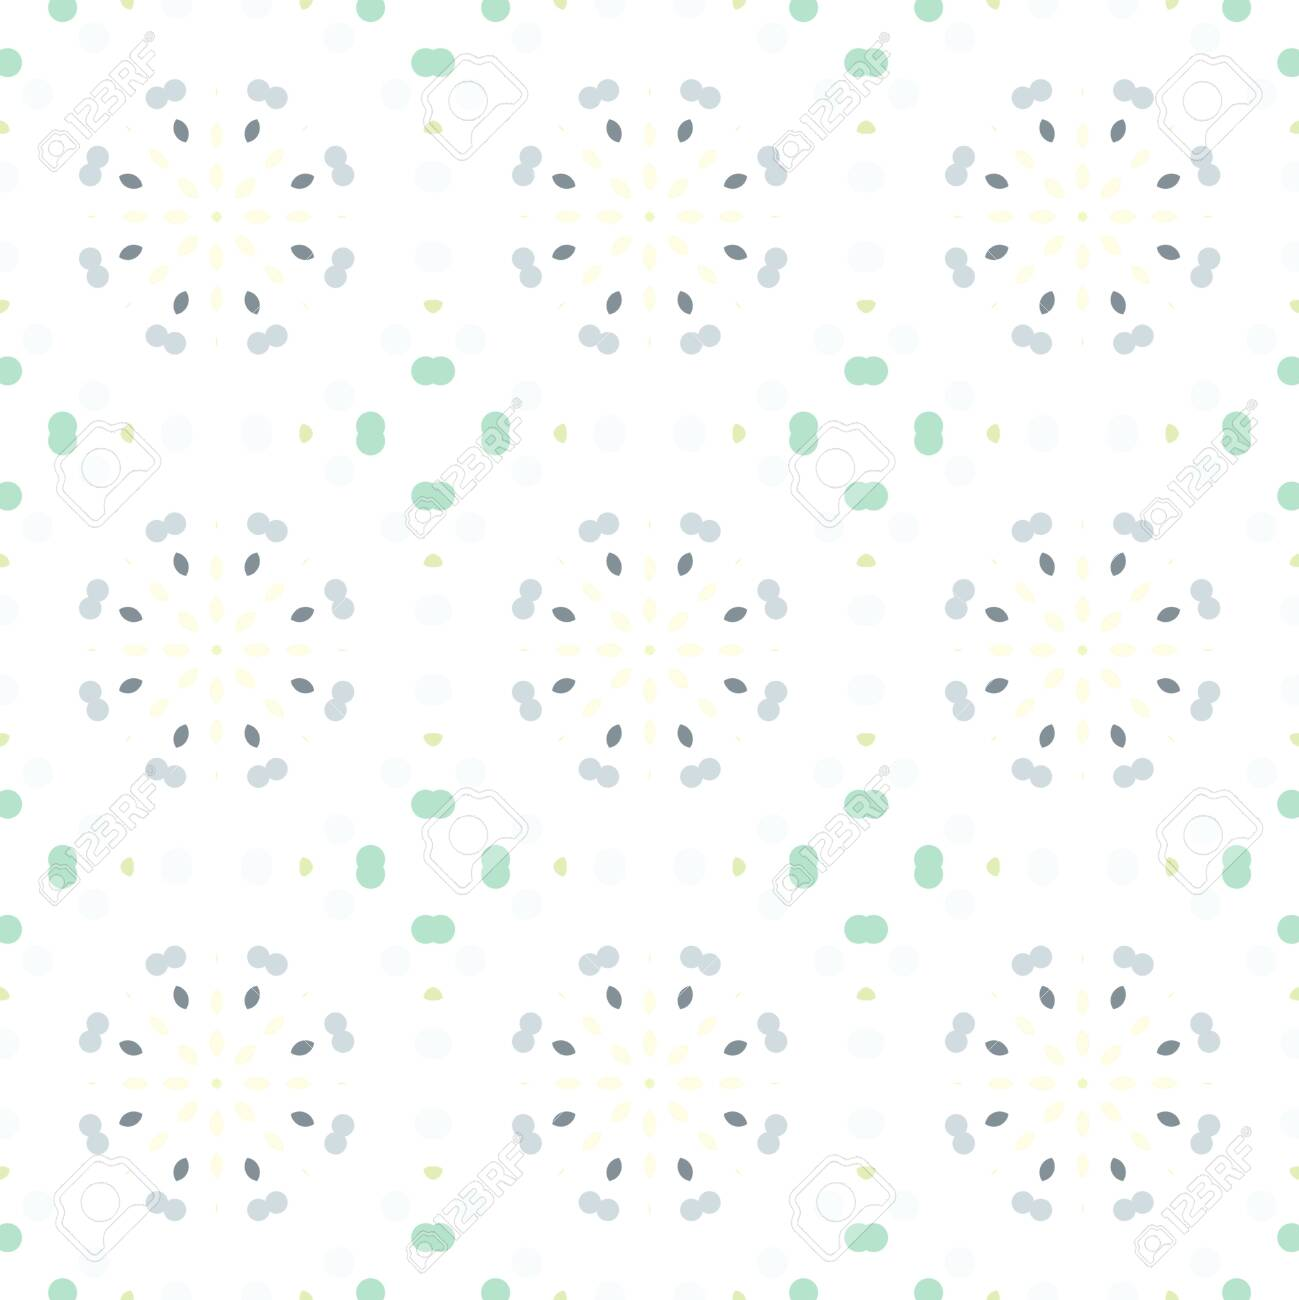 Seamless abstract pattern background with a variety of colored circles. - 141929116